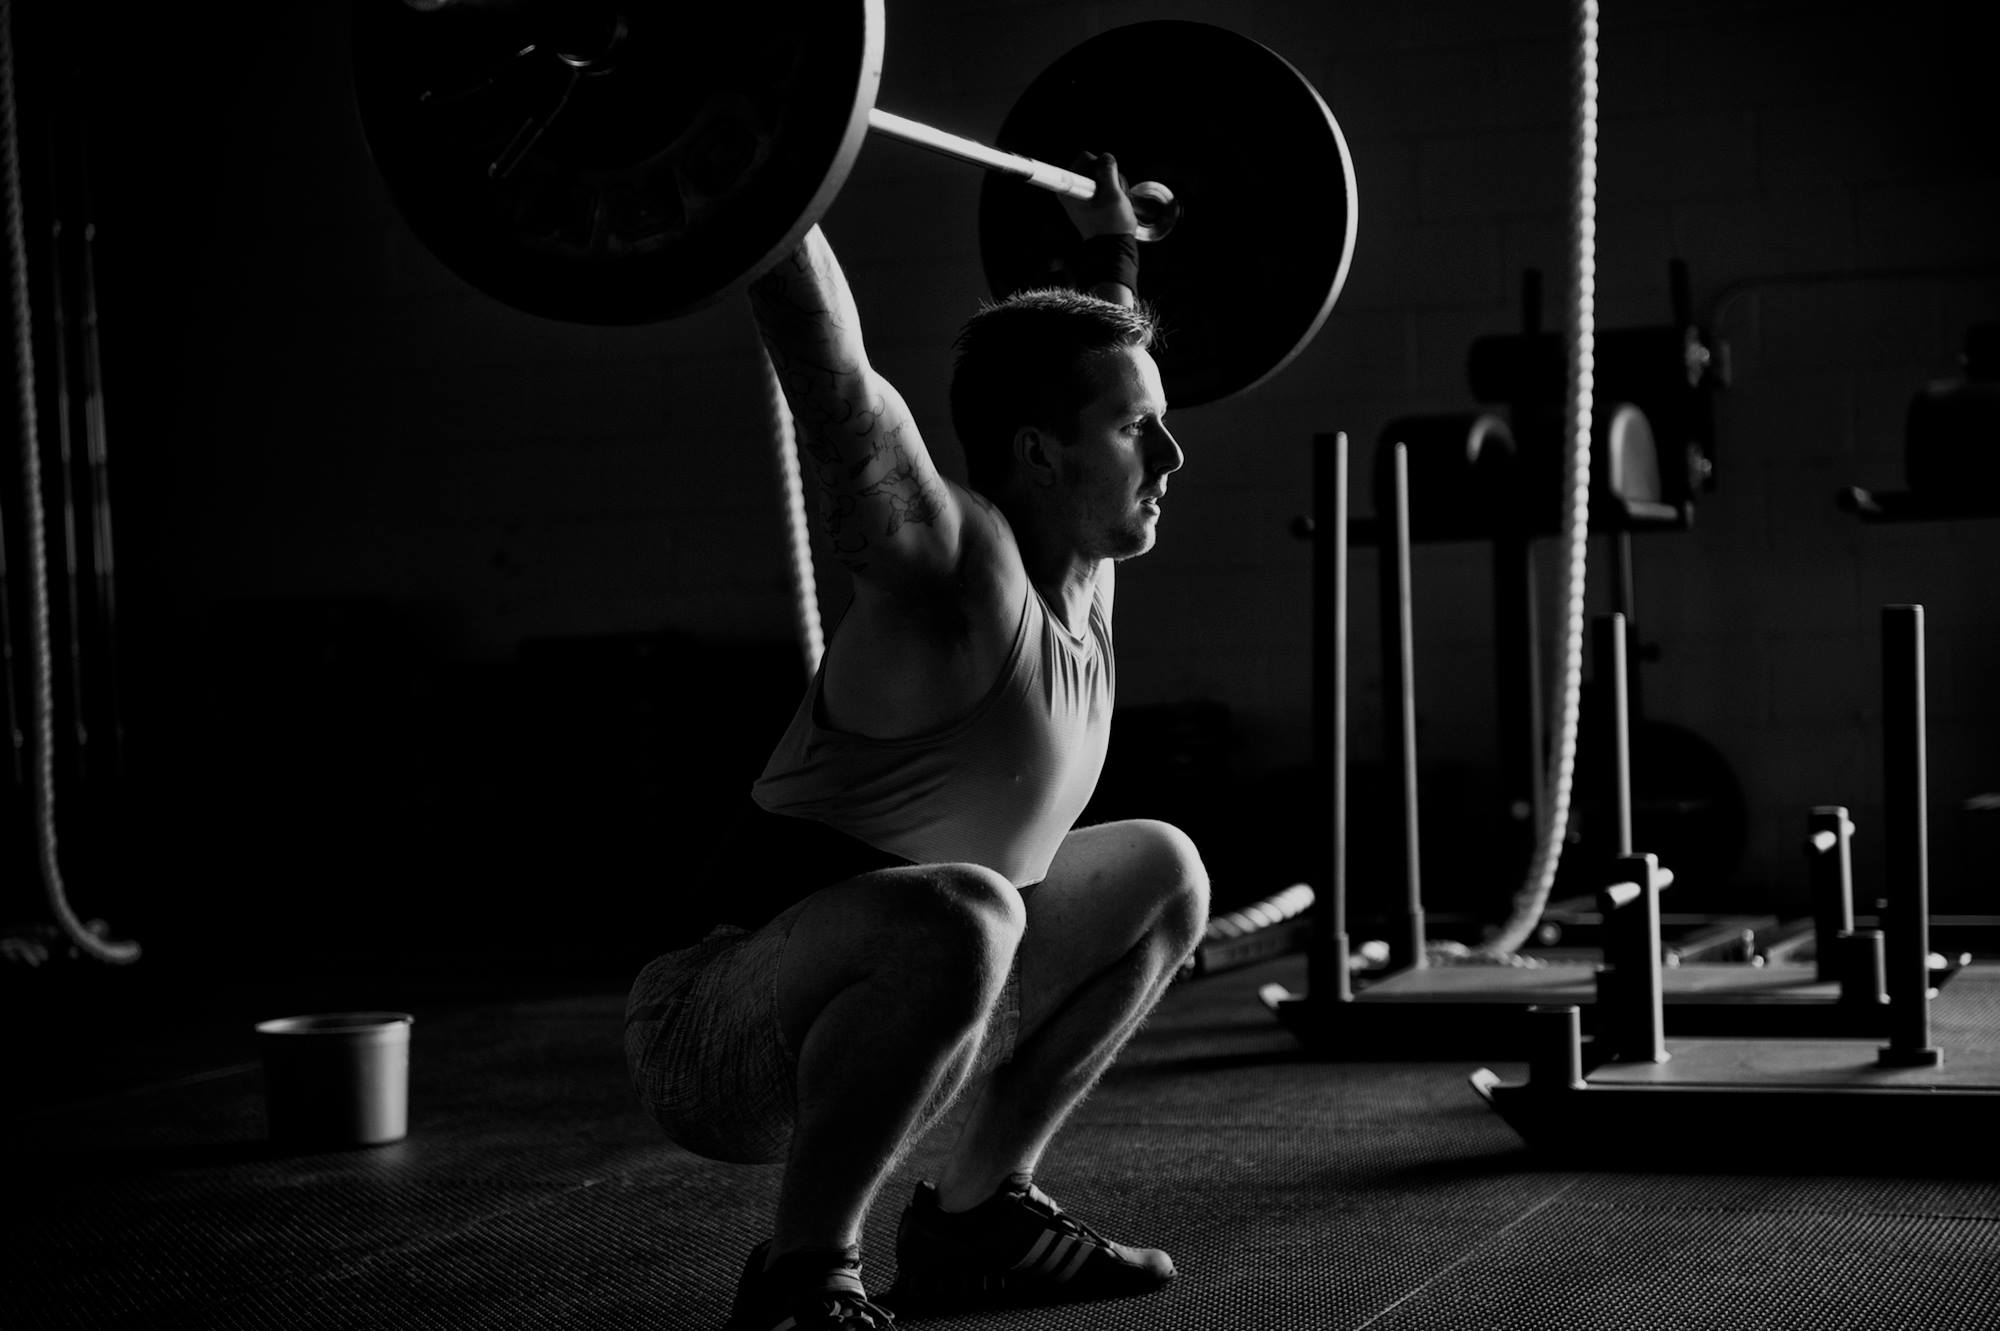 Crossfit Wallpapers High Quality Download 2000x1331